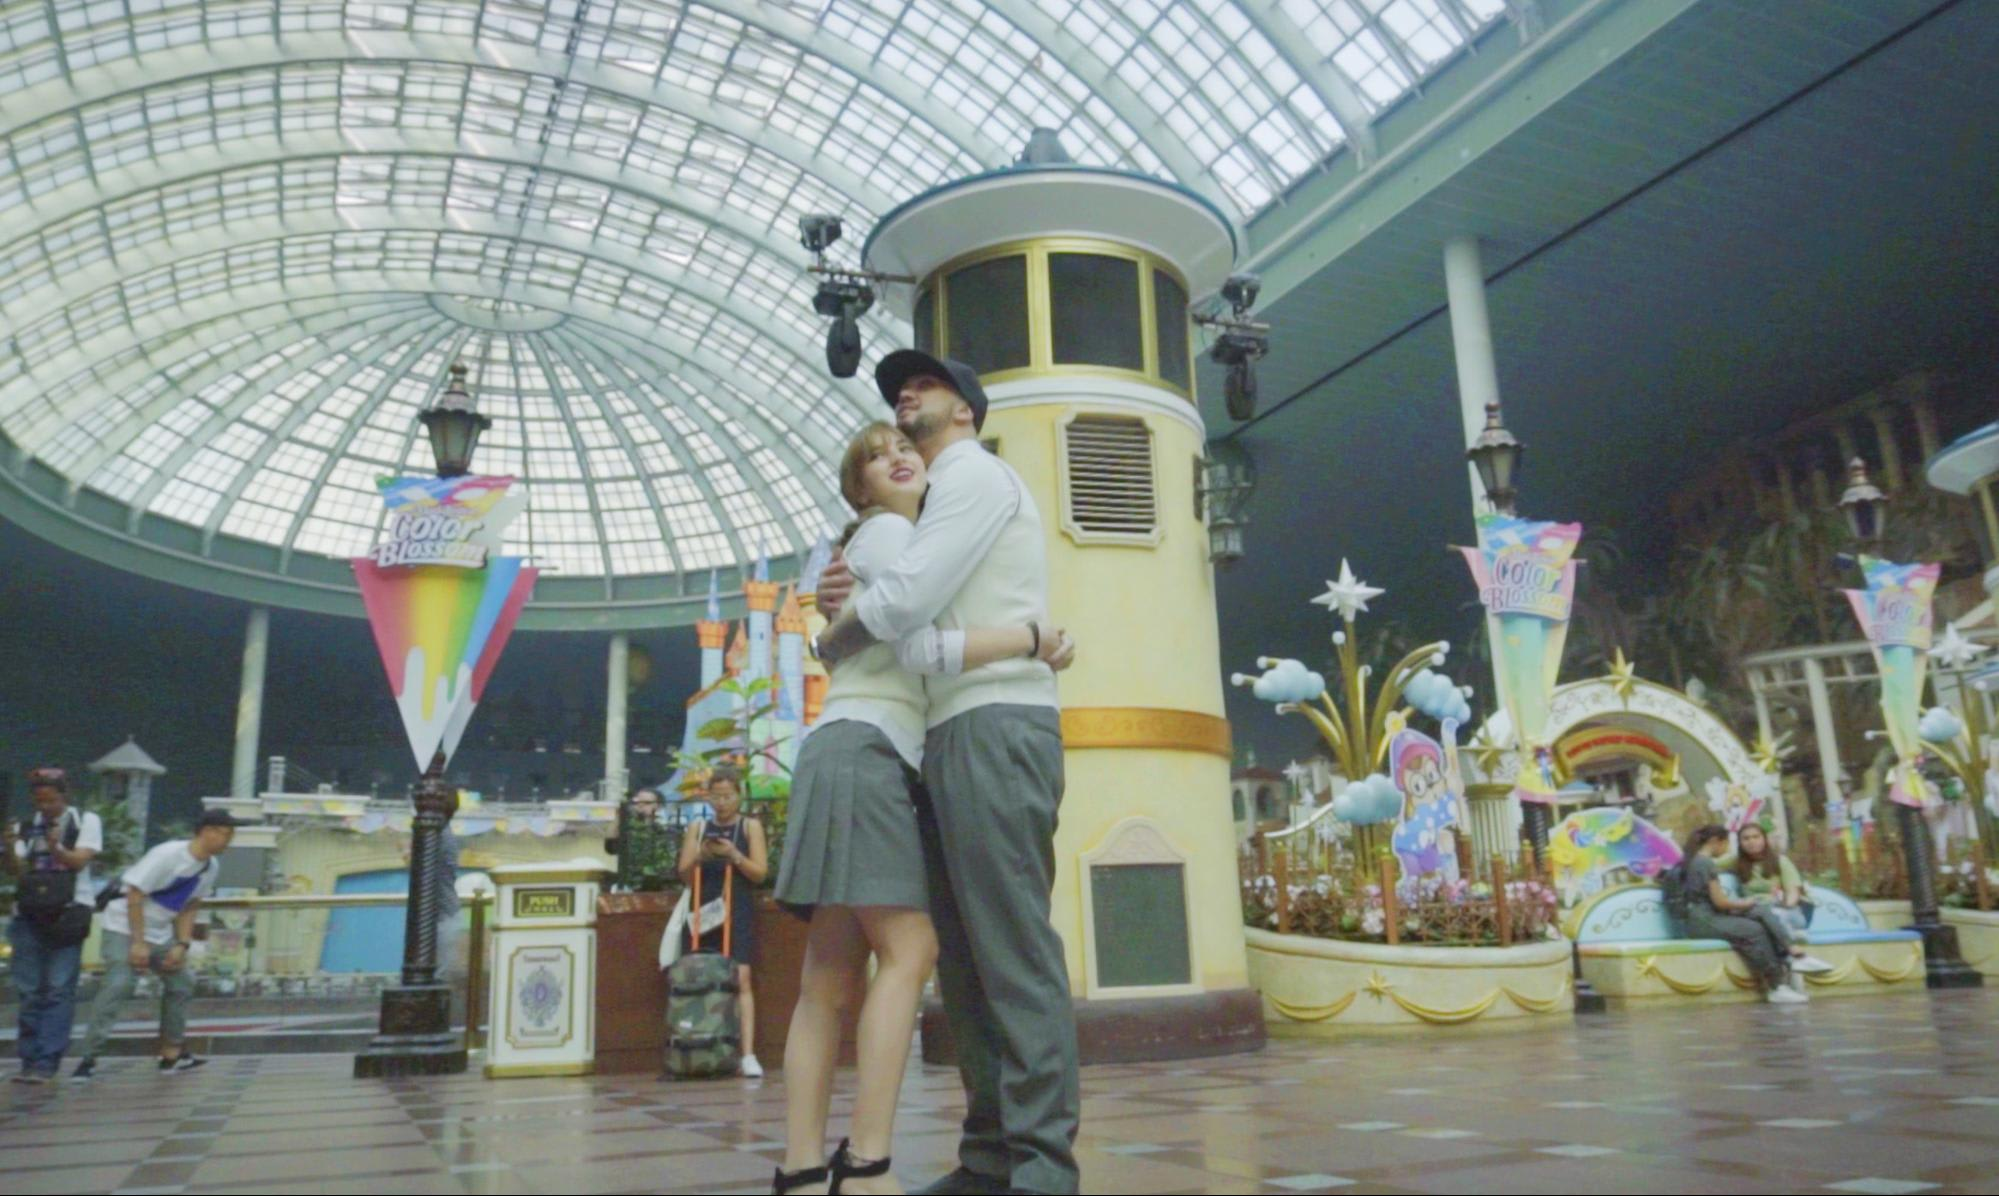 BILLY COLEEN SEOUL SOUTH KOREA lotte world